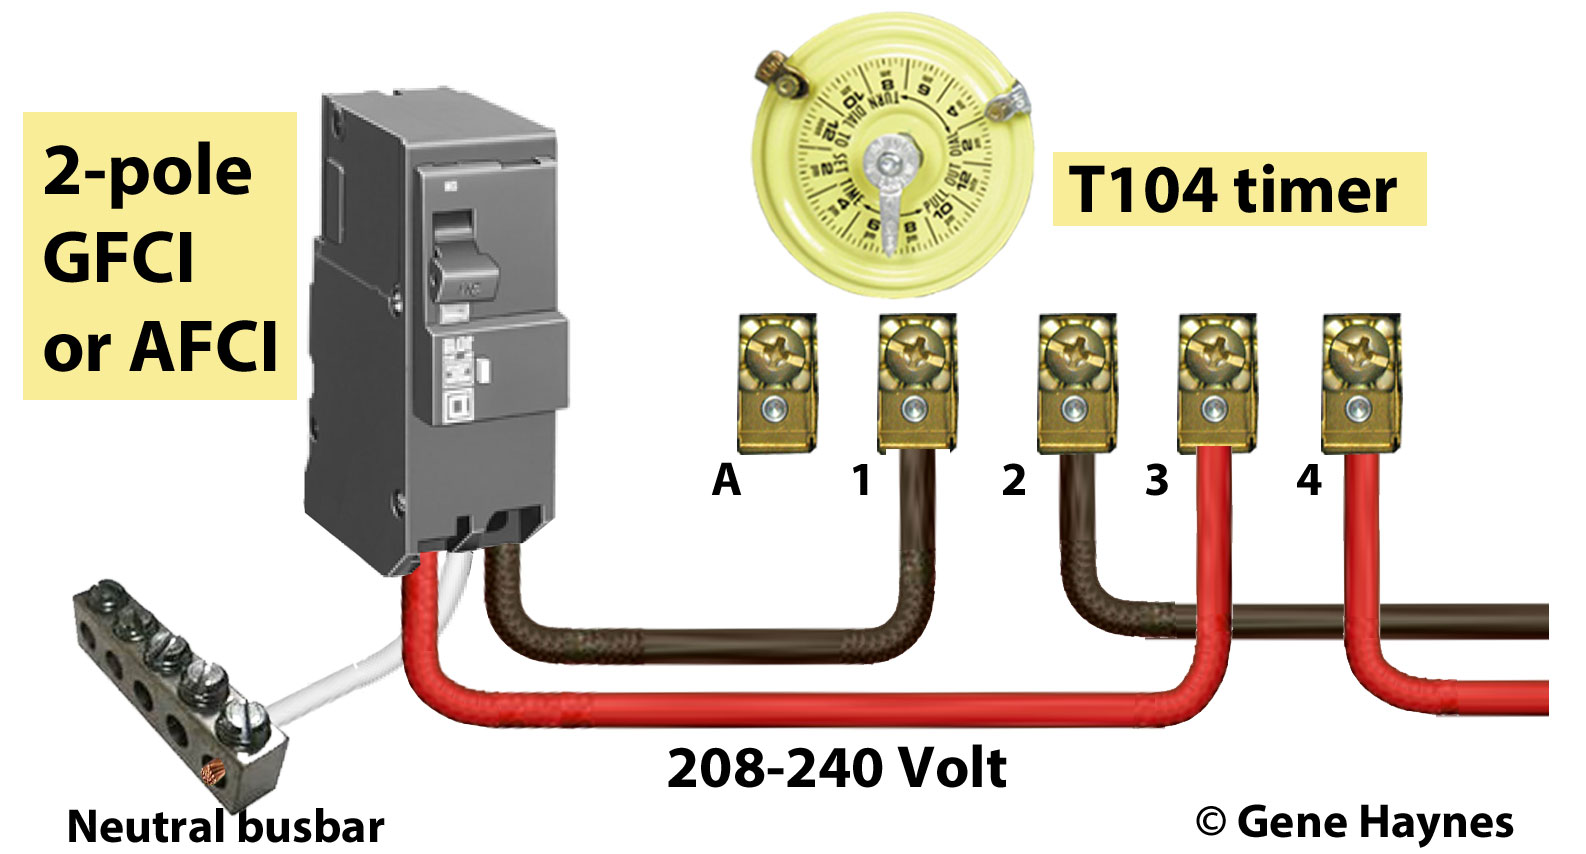 GFCI 2 pole breaker 800 how to install and troubleshoot gfci 50 Amp GFCI Breaker Wiring Diagram For at webbmarketing.co